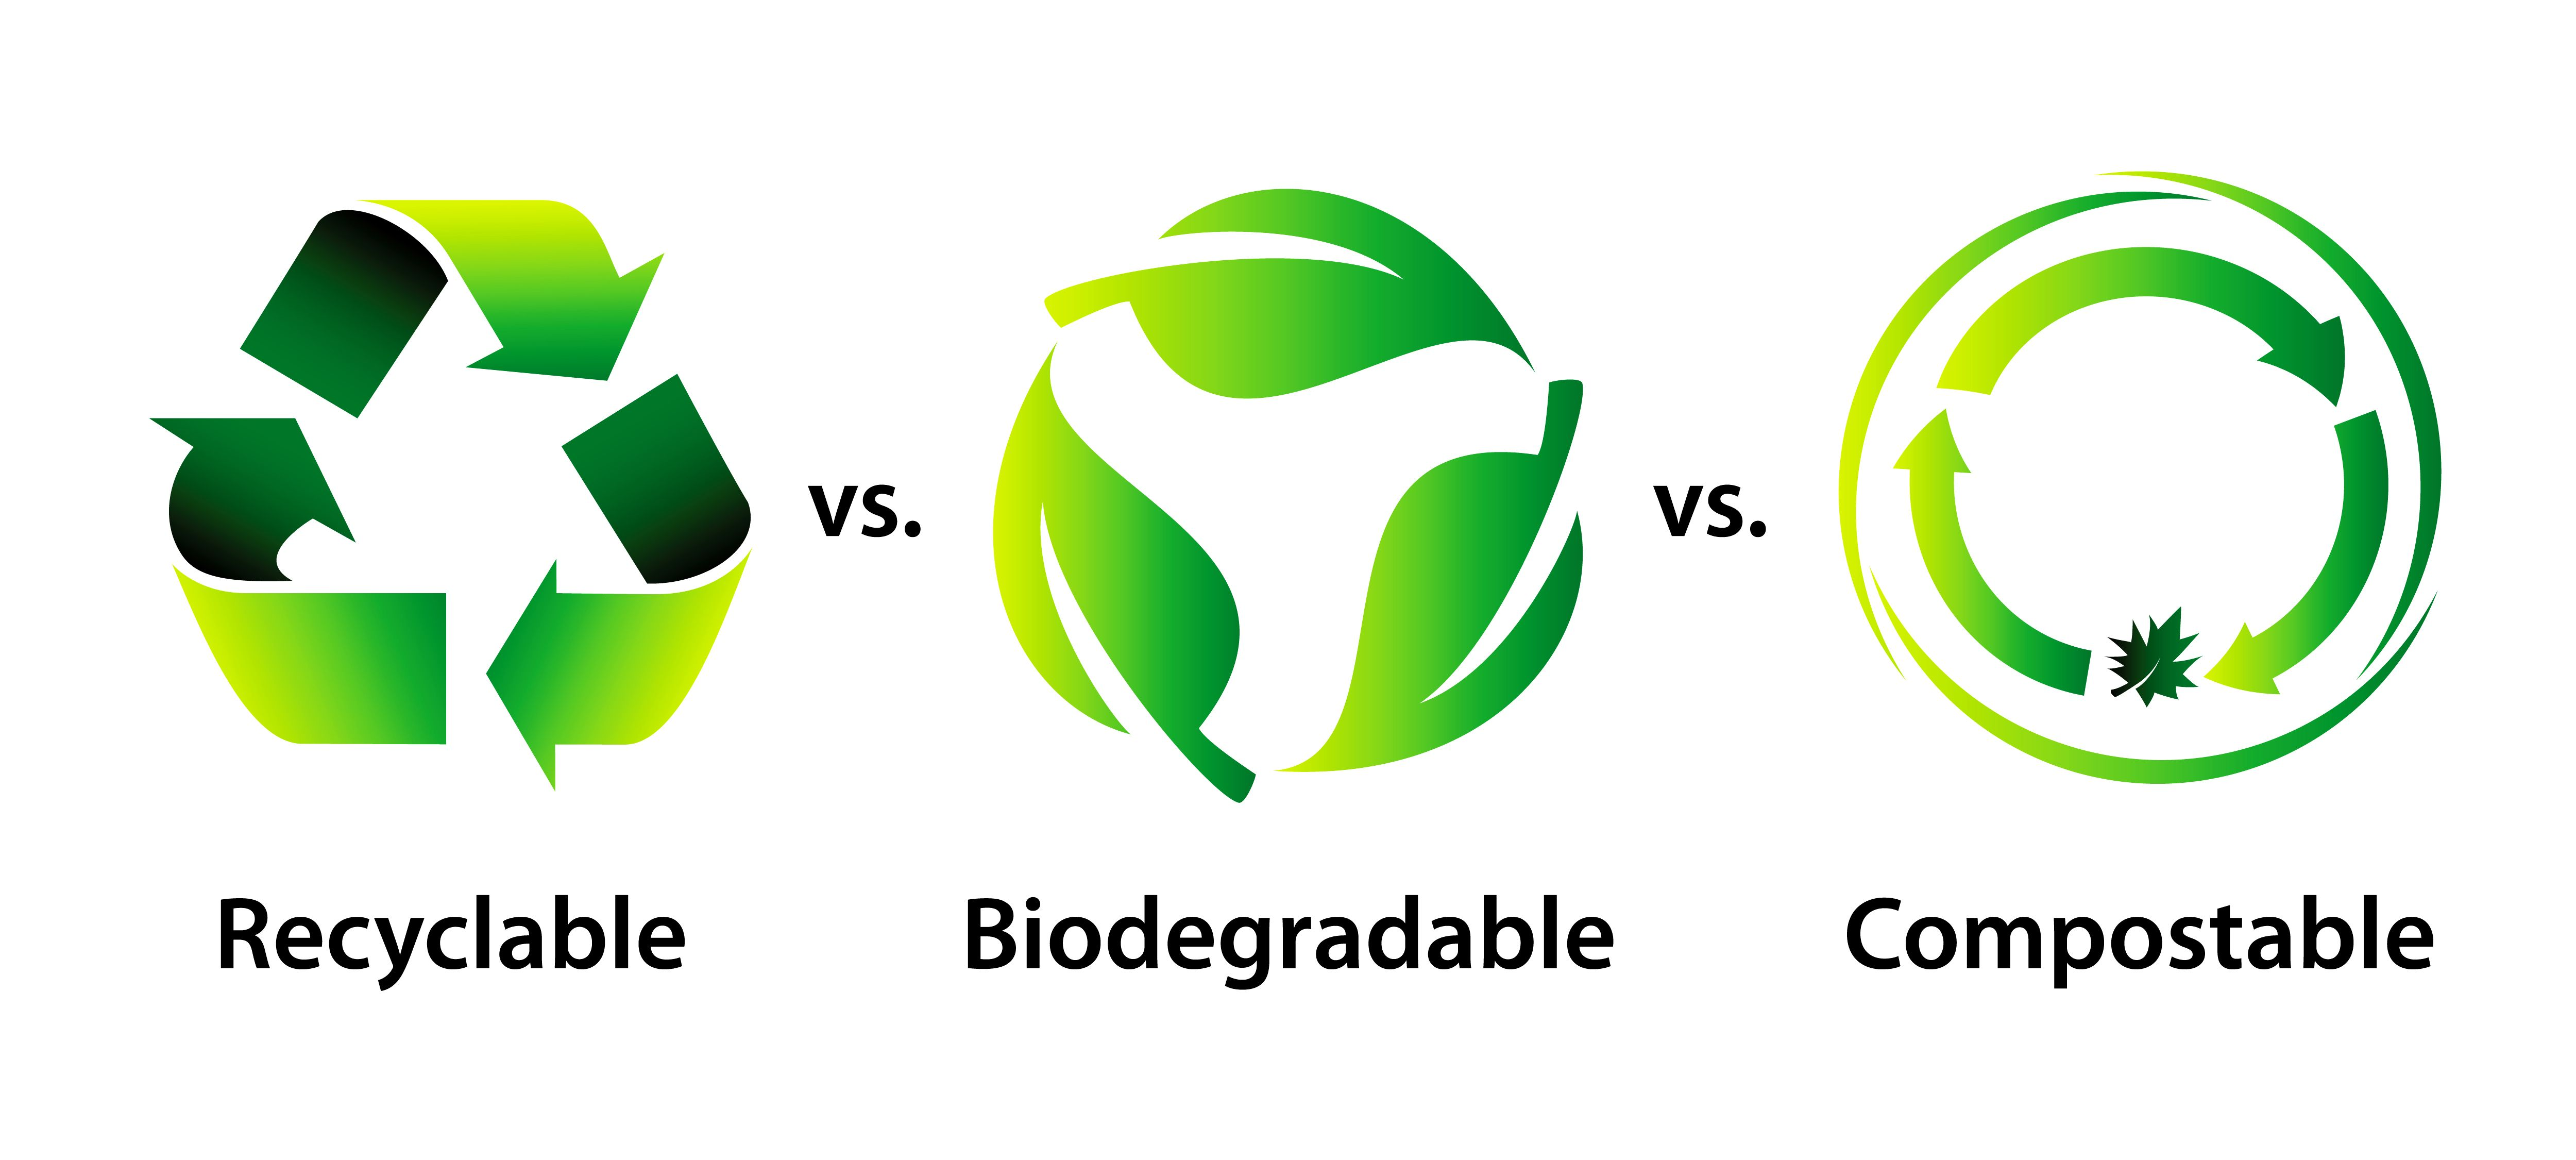 emballage-biodegradable-certification